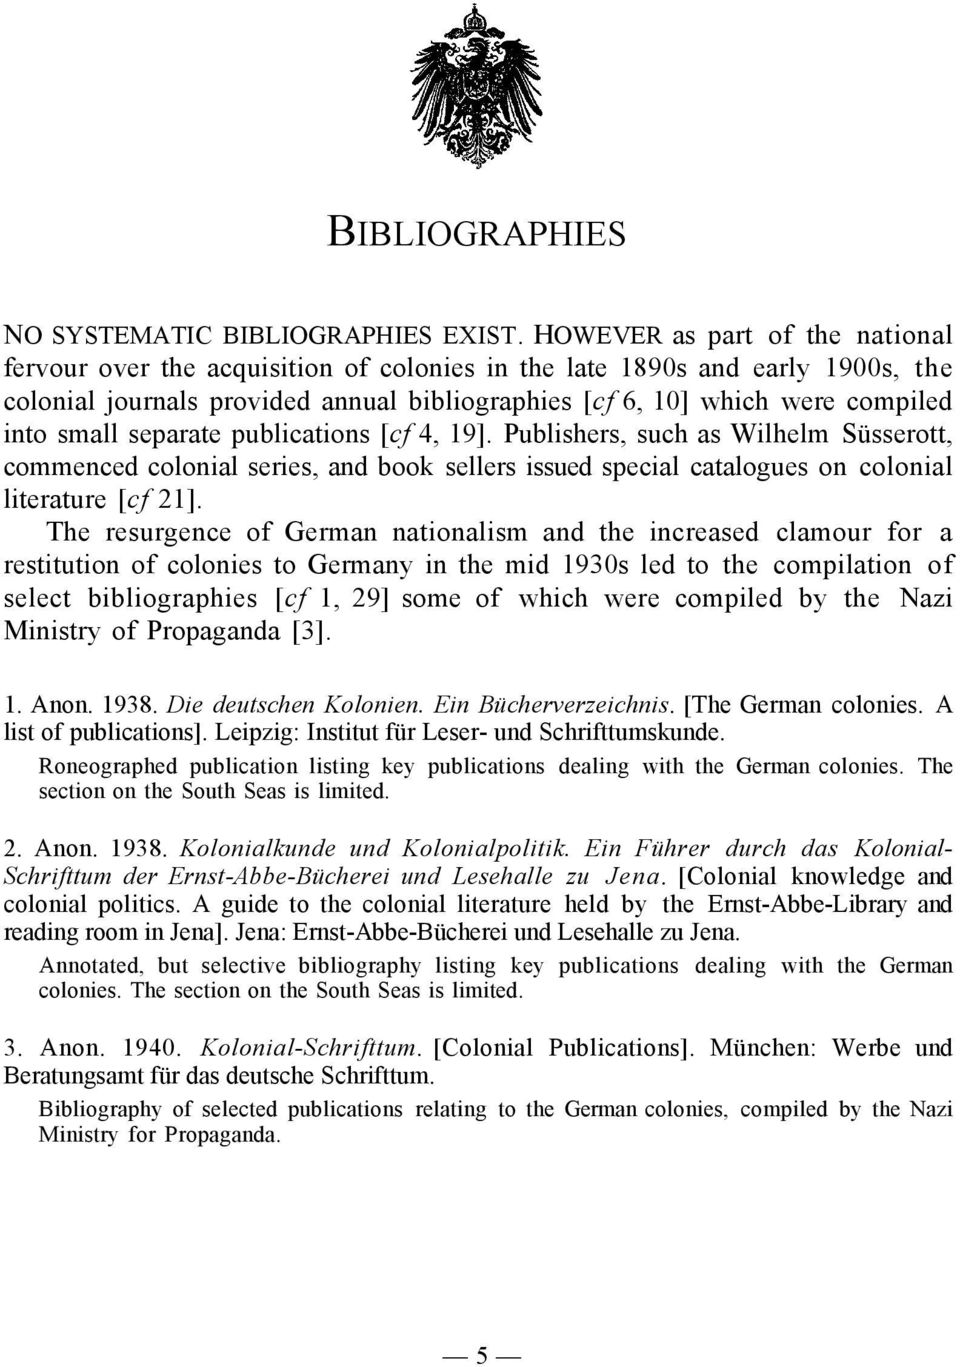 small separate publications [cf 4, 19]. Publishers, such as Wilhelm Süsserott, commenced colonial series, and book sellers issued special catalogues on colonial literature [cf 21].